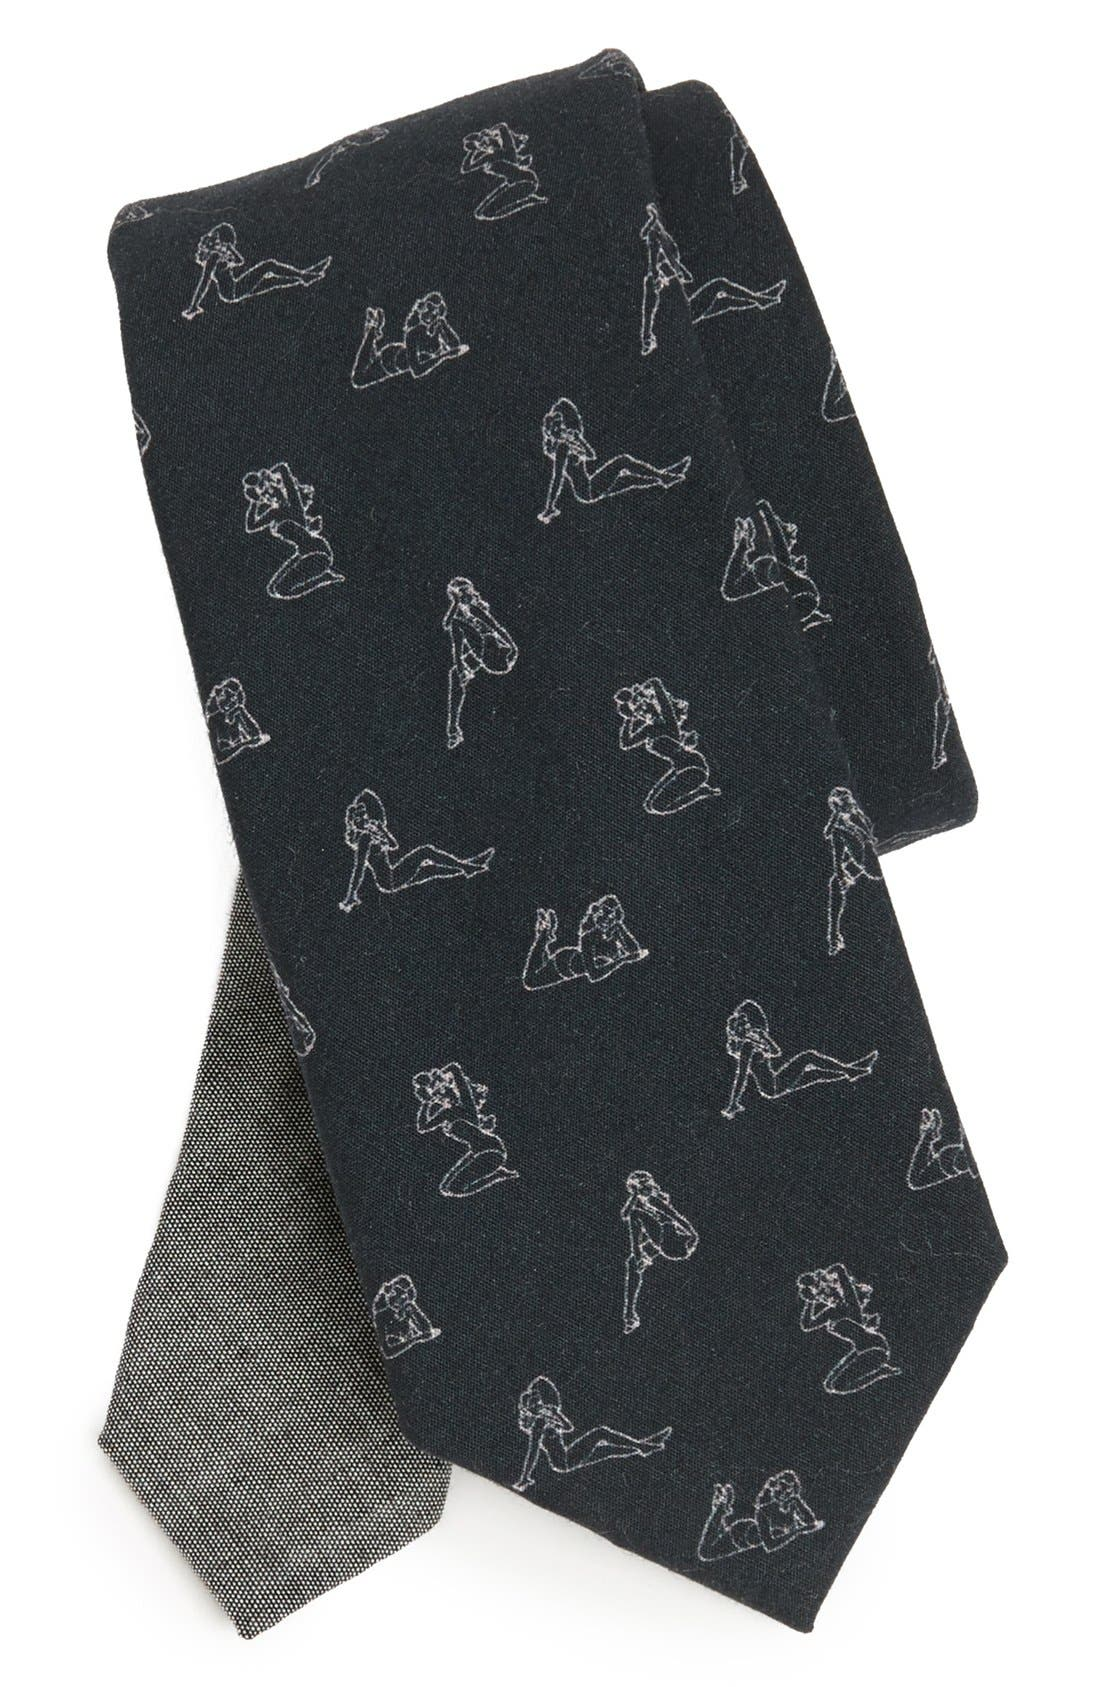 Main Image - EDIT by The Tie Bar 'Novelty' Cotton Tie (Nordstrom Exclusive)